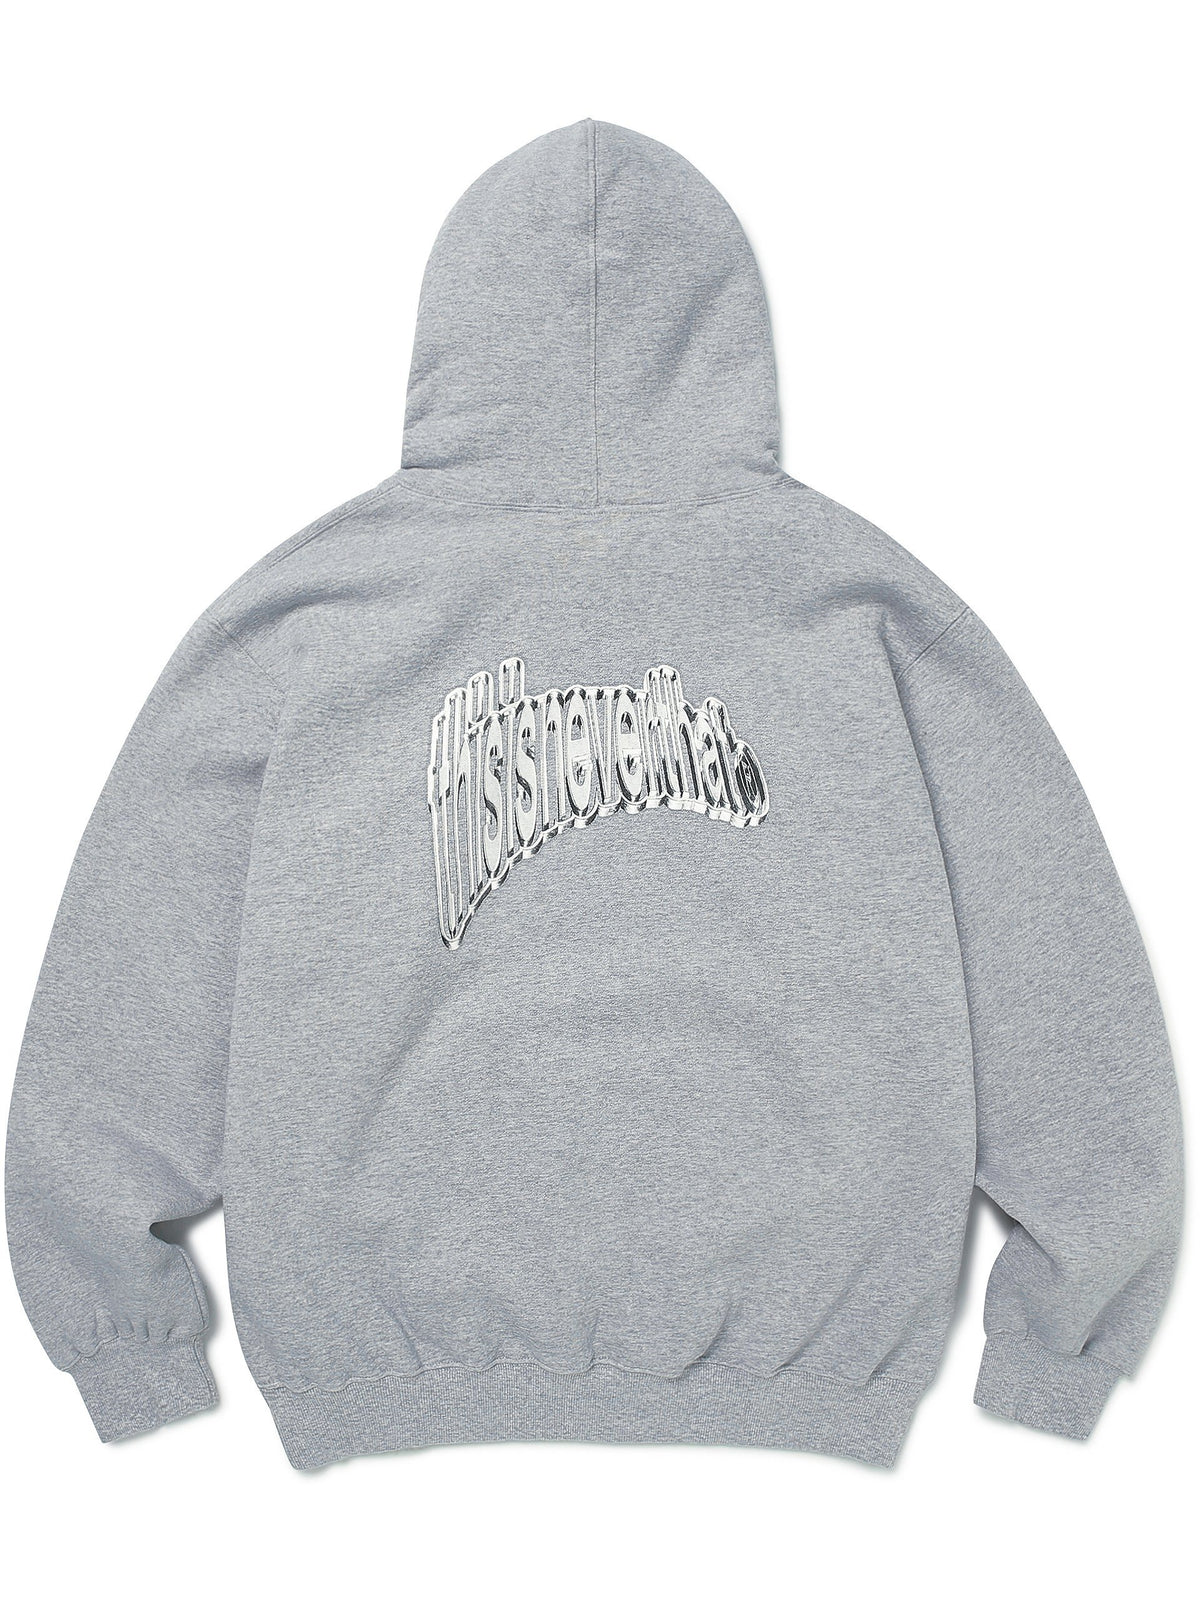 Metal Hooded Sweatshirt - thisisneverthat